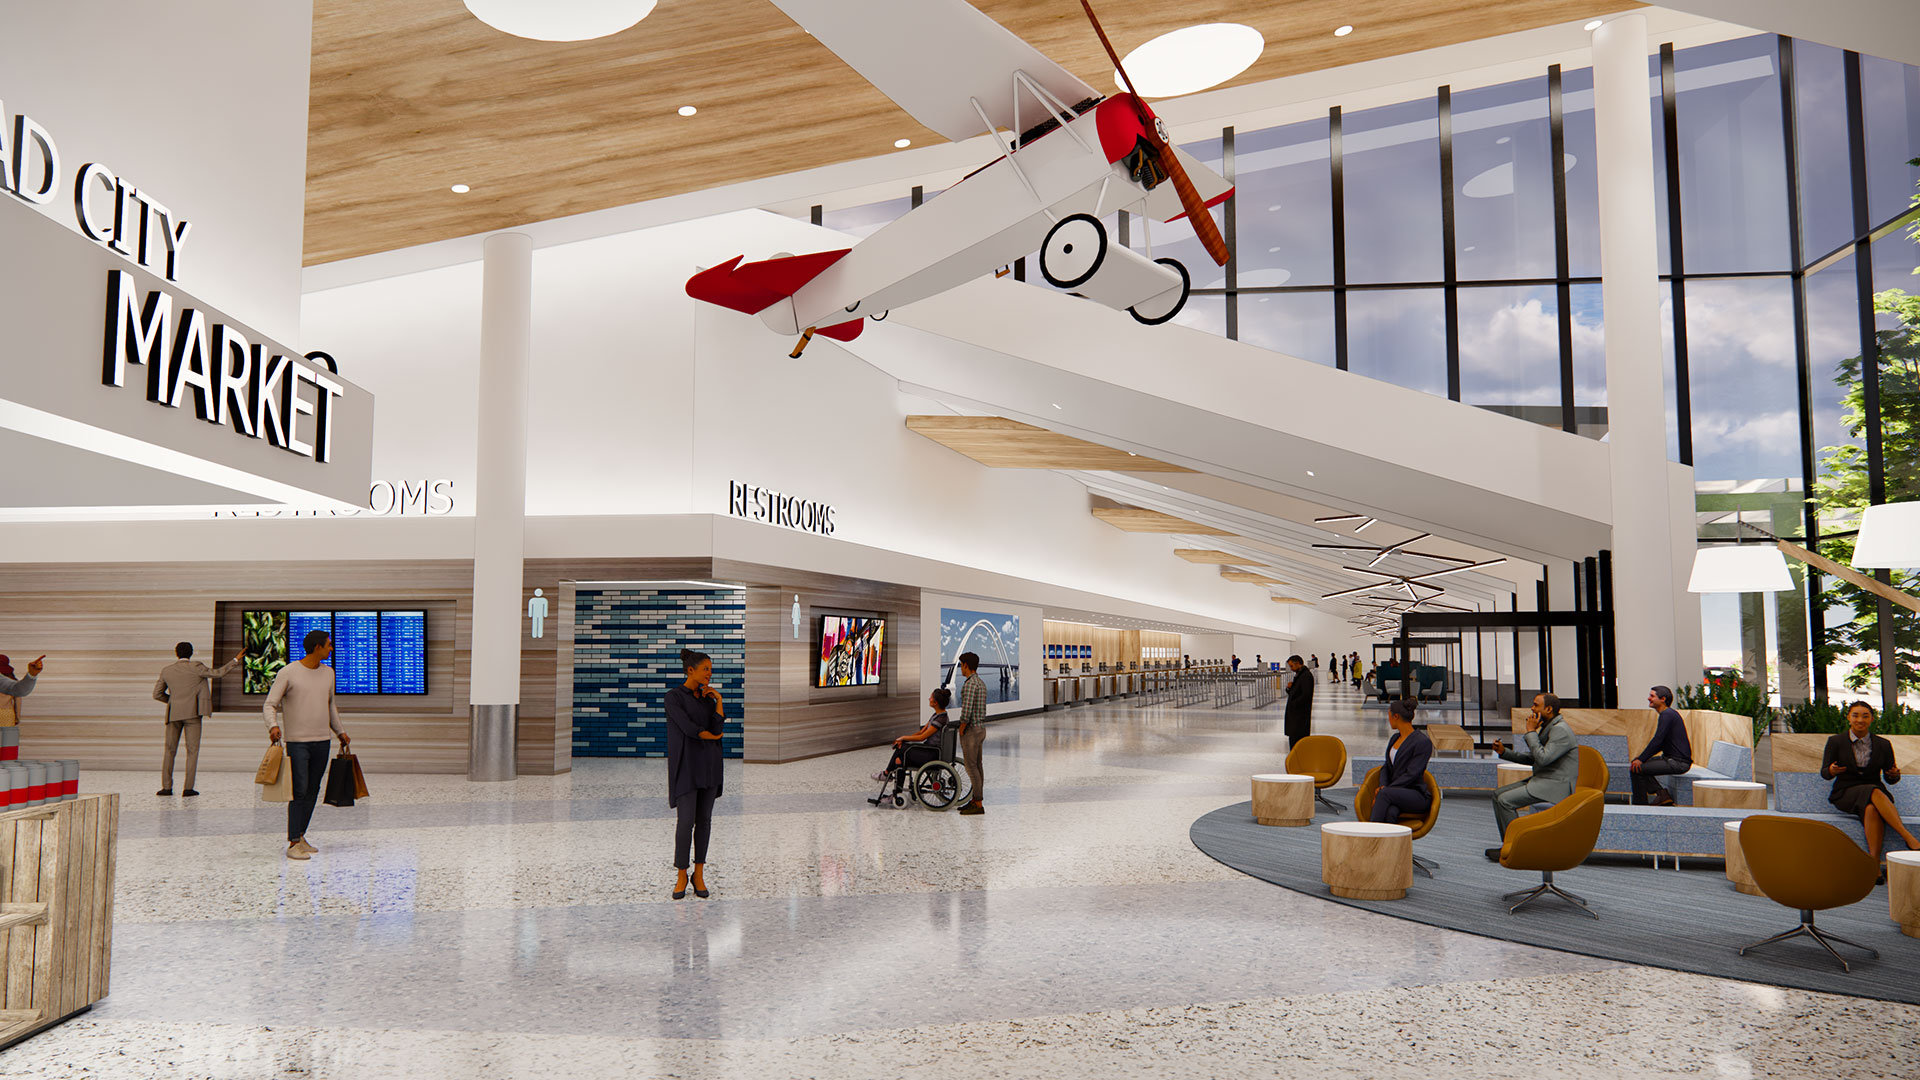 Quad City Airport Rendering with plane